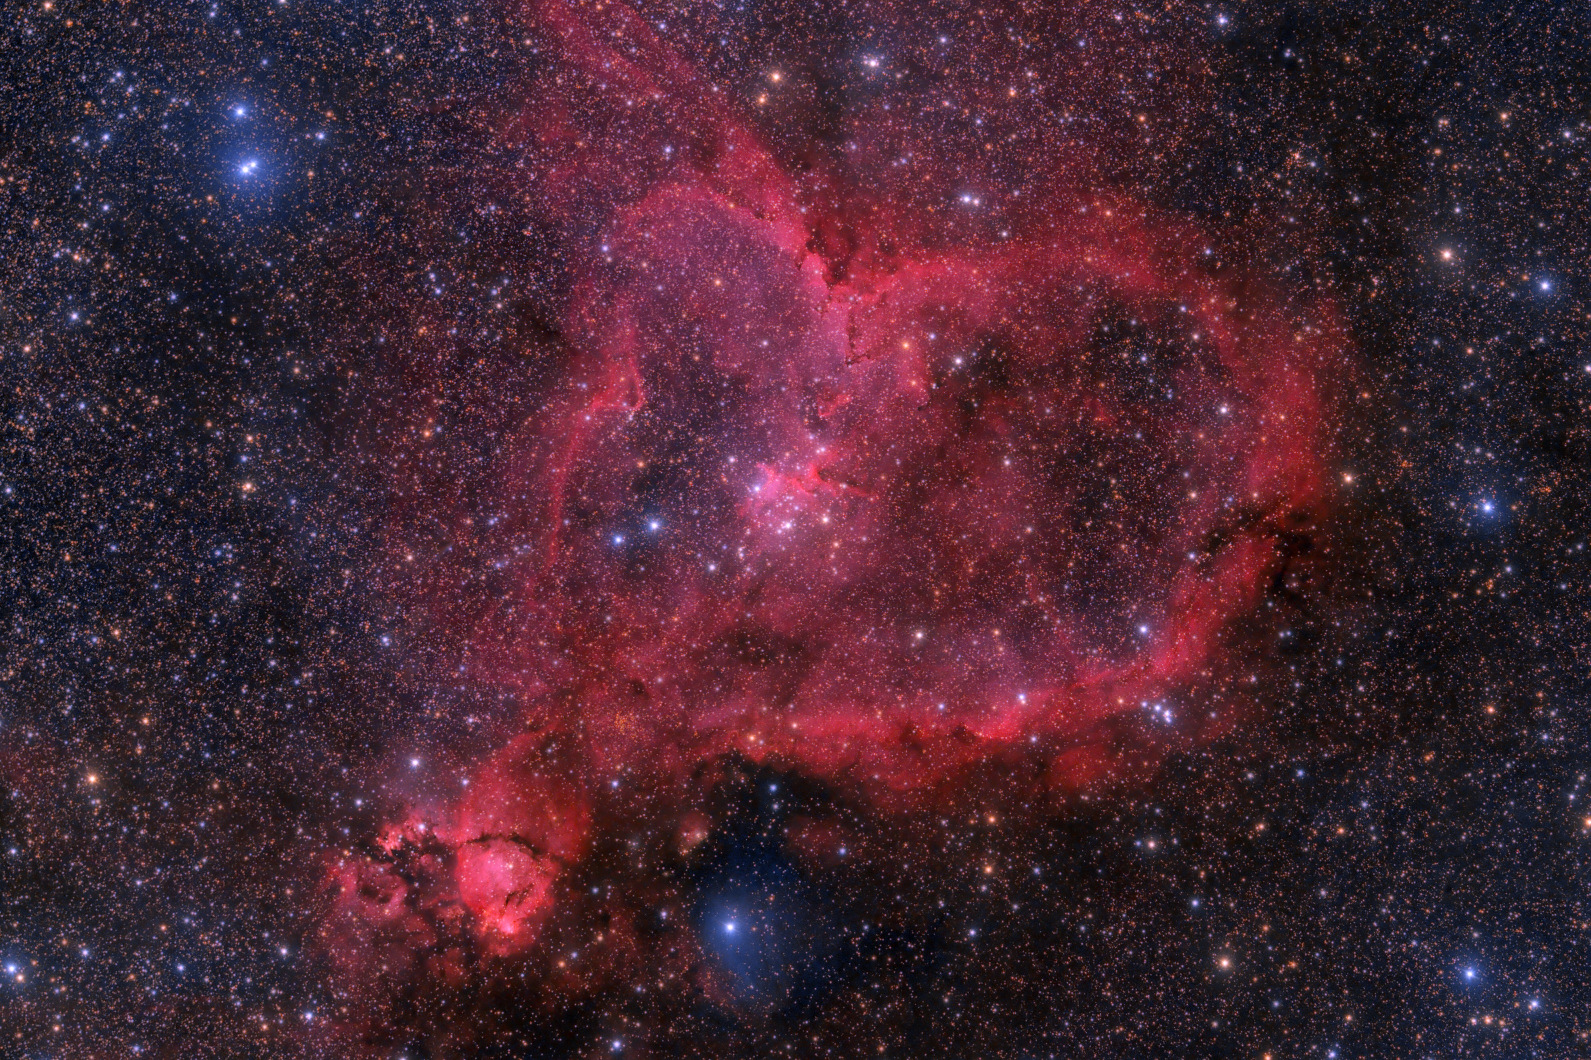 Jimmy Walker's fantastic image of the emission Heart Nebula (IC 1805) was captured with a FLI Microline 11002 CCD camera on the RASA in 12 x five-minute unguided exposures on a Bisque mount under New Mexico skies. Image credit: © Jimmy Walker, used with permission.